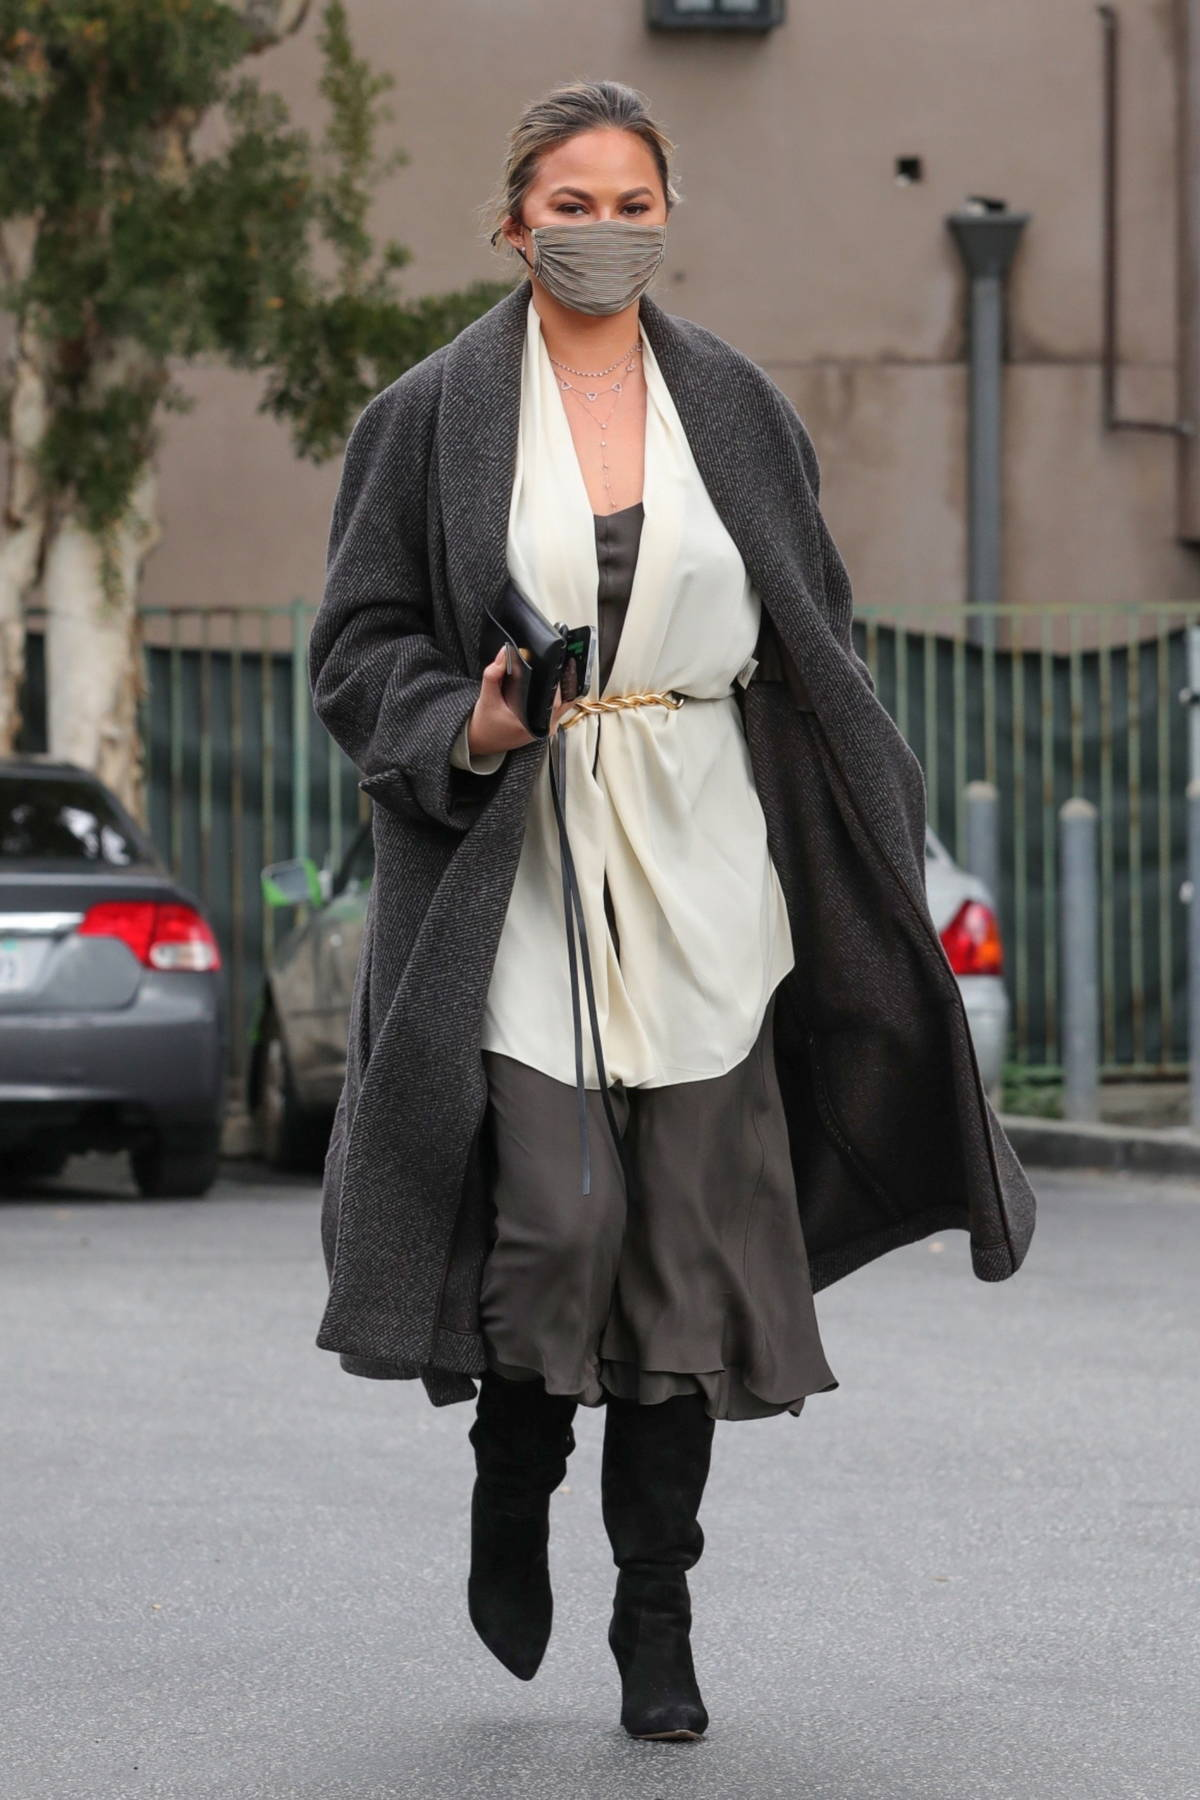 Chrissy Teigen puts on a stylish display while running a few errands in Beverly Hills, California